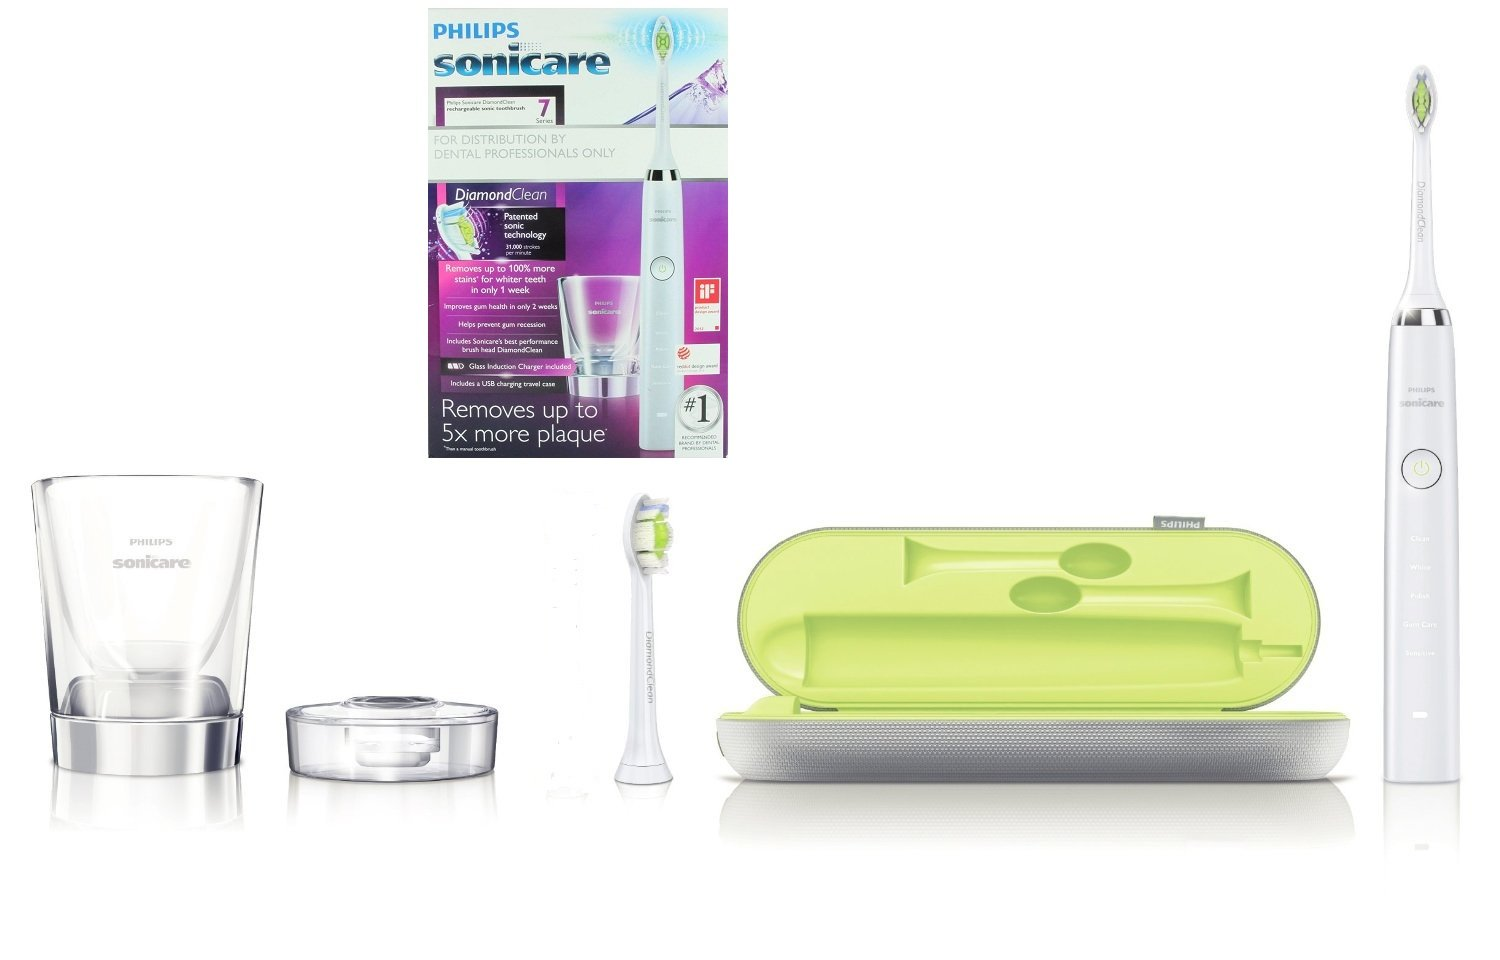 Philips Sonicare DiamondClean Toothbrush 7 Series Rechargeable Electric Toothrush Dental Professional Model